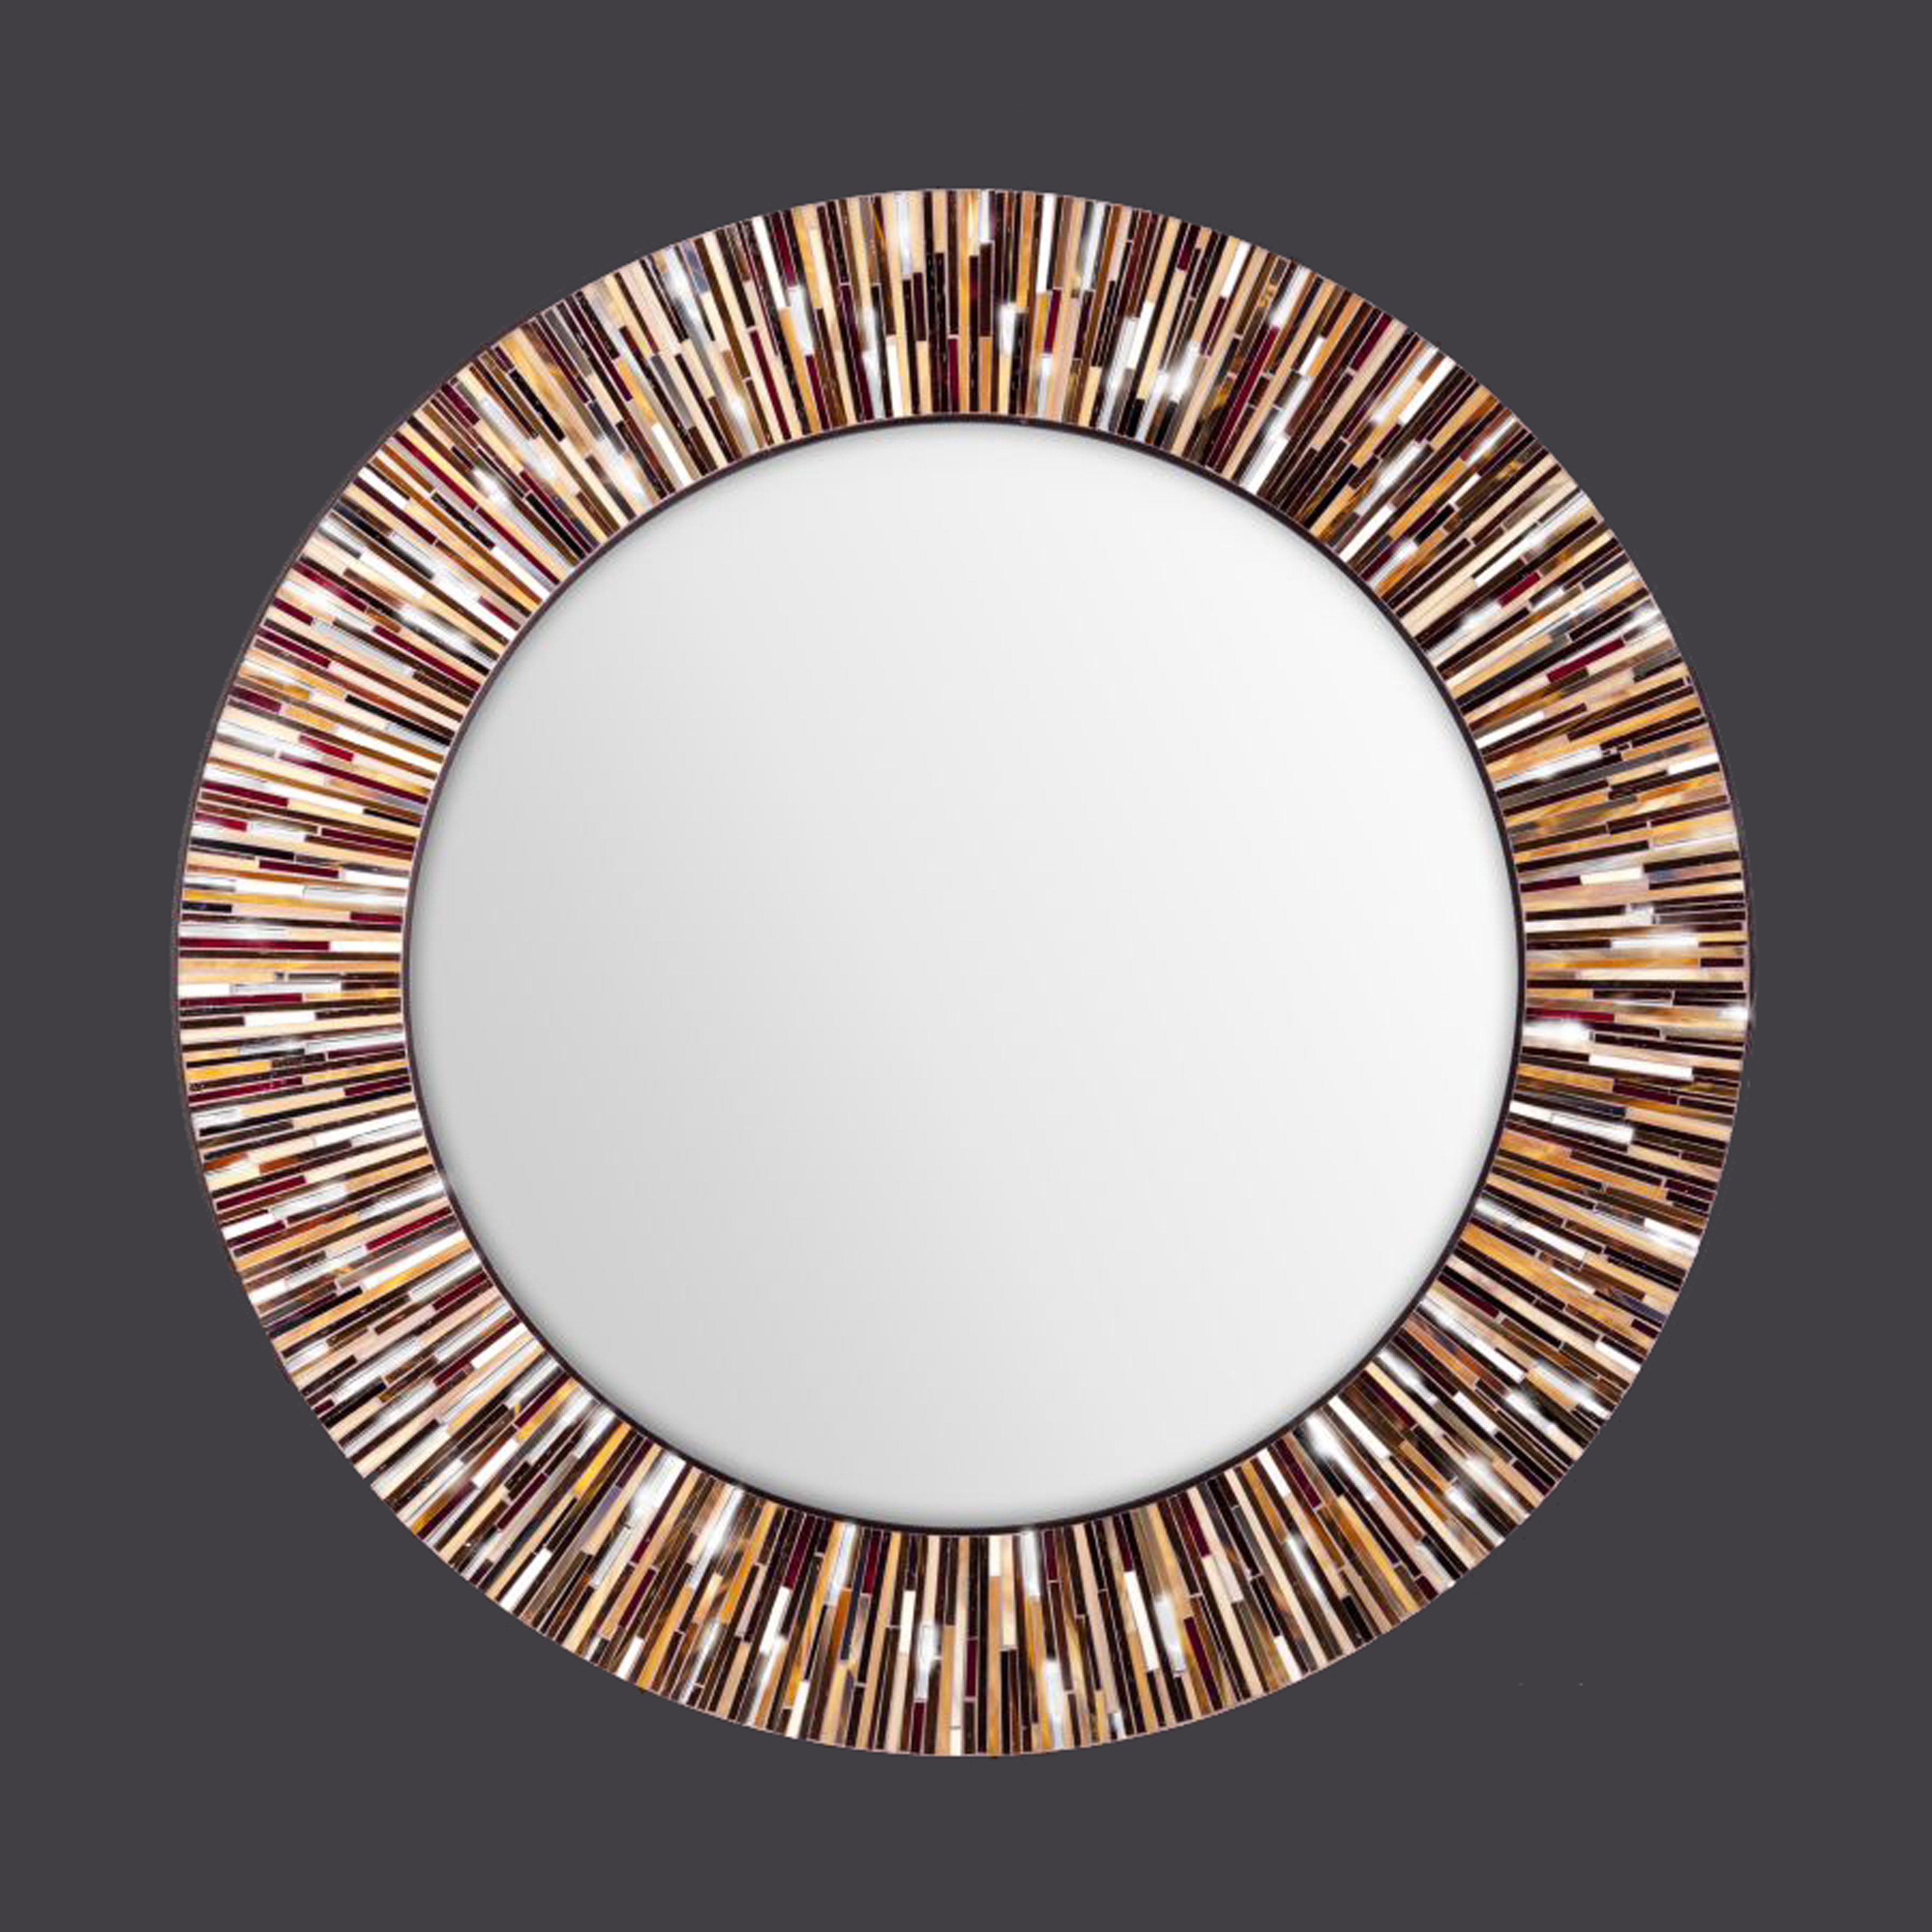 Mosaic Wall Mirrors Piaggi With Regard To Funky Wall Mirrors (View 11 of 15)